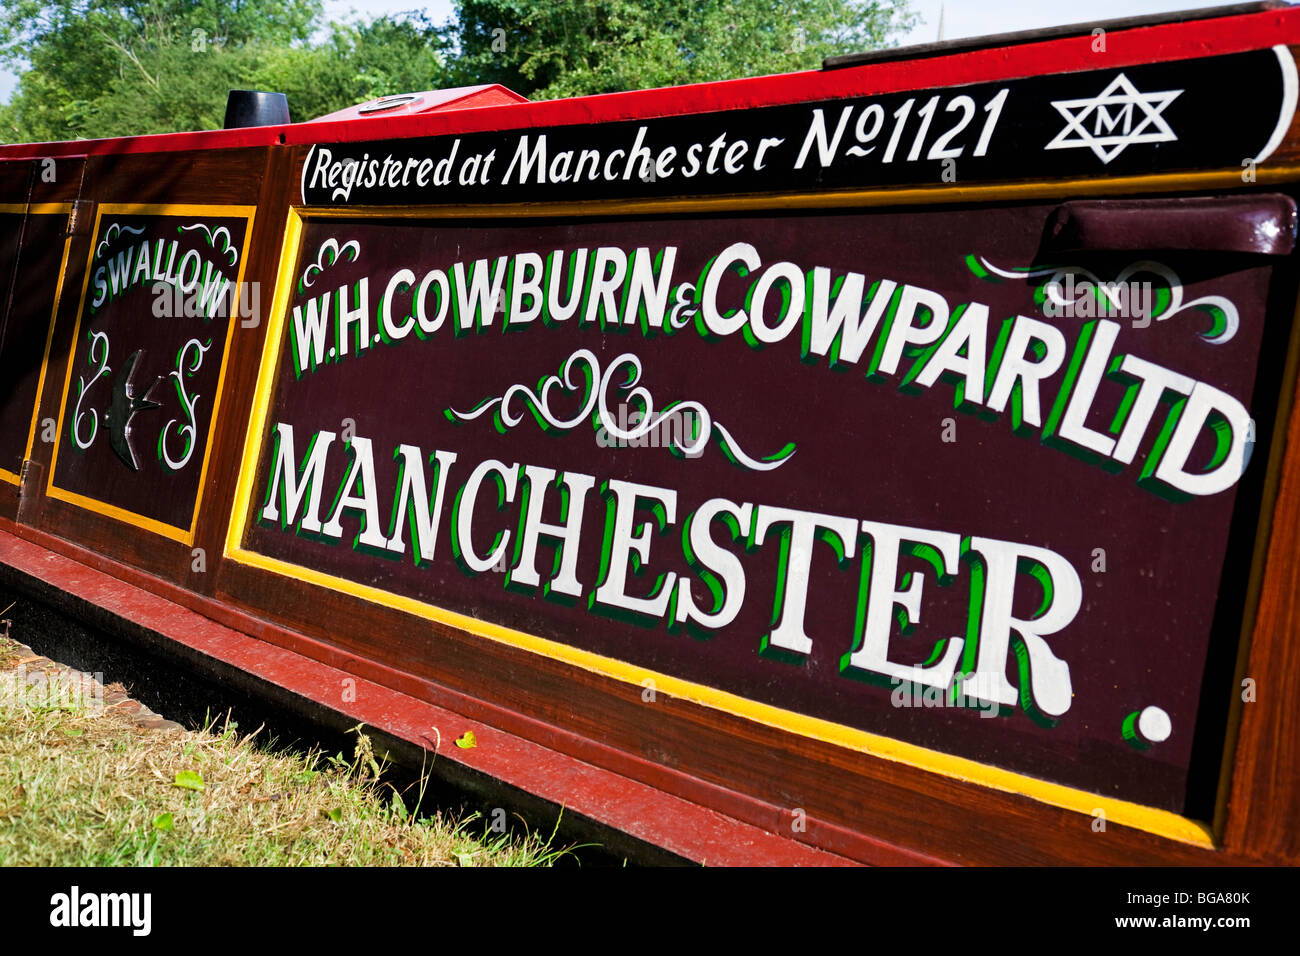 England Northamptonshire Braunston Detail of freight barge 'Swallow' (W. H. Cowburn and Cowpar Ltd.) - Stock Image